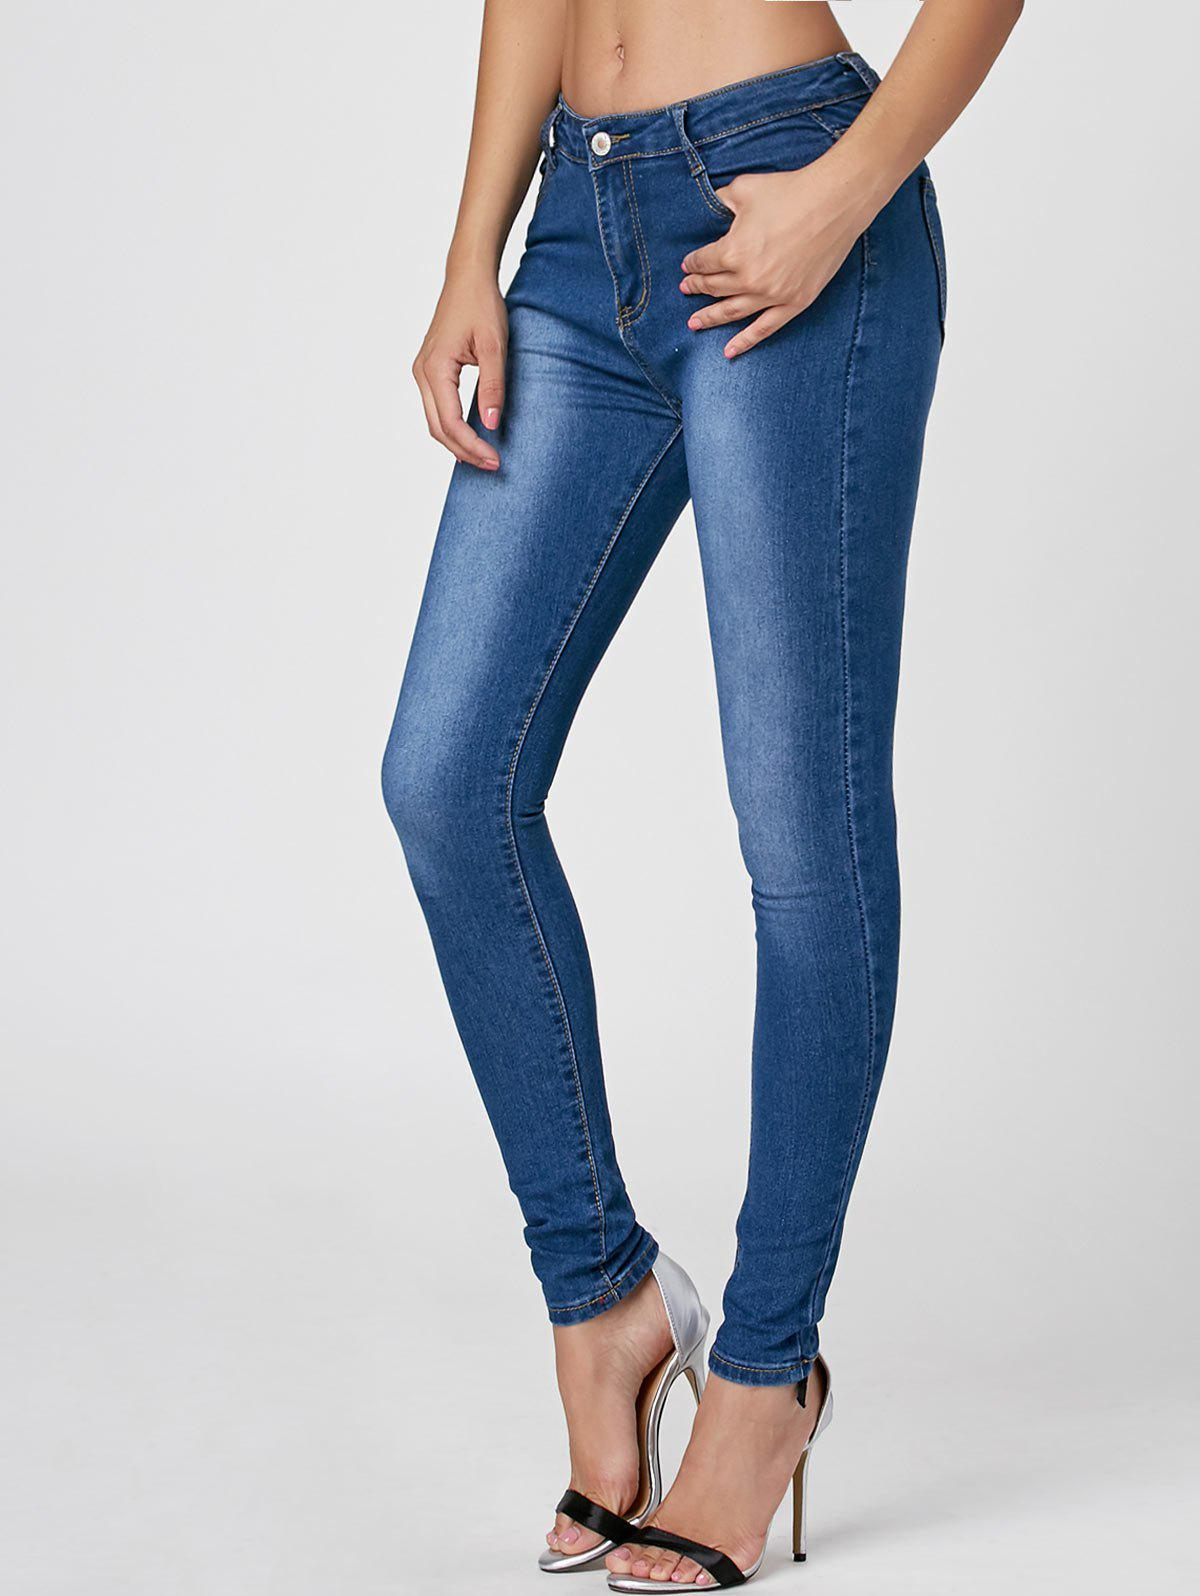 Dark Washed High Waist Skinny JeansWOMEN<br><br>Size: XL; Color: CERULEAN; Material: Cotton; Length: Normal; Fabric Type: Denim; Wash: Dark; Fit Type: Skinny; Waist Type: High; Elasticity: Elastic; Weight: 0.4500kg; Package Contents: 1 x Jeans;